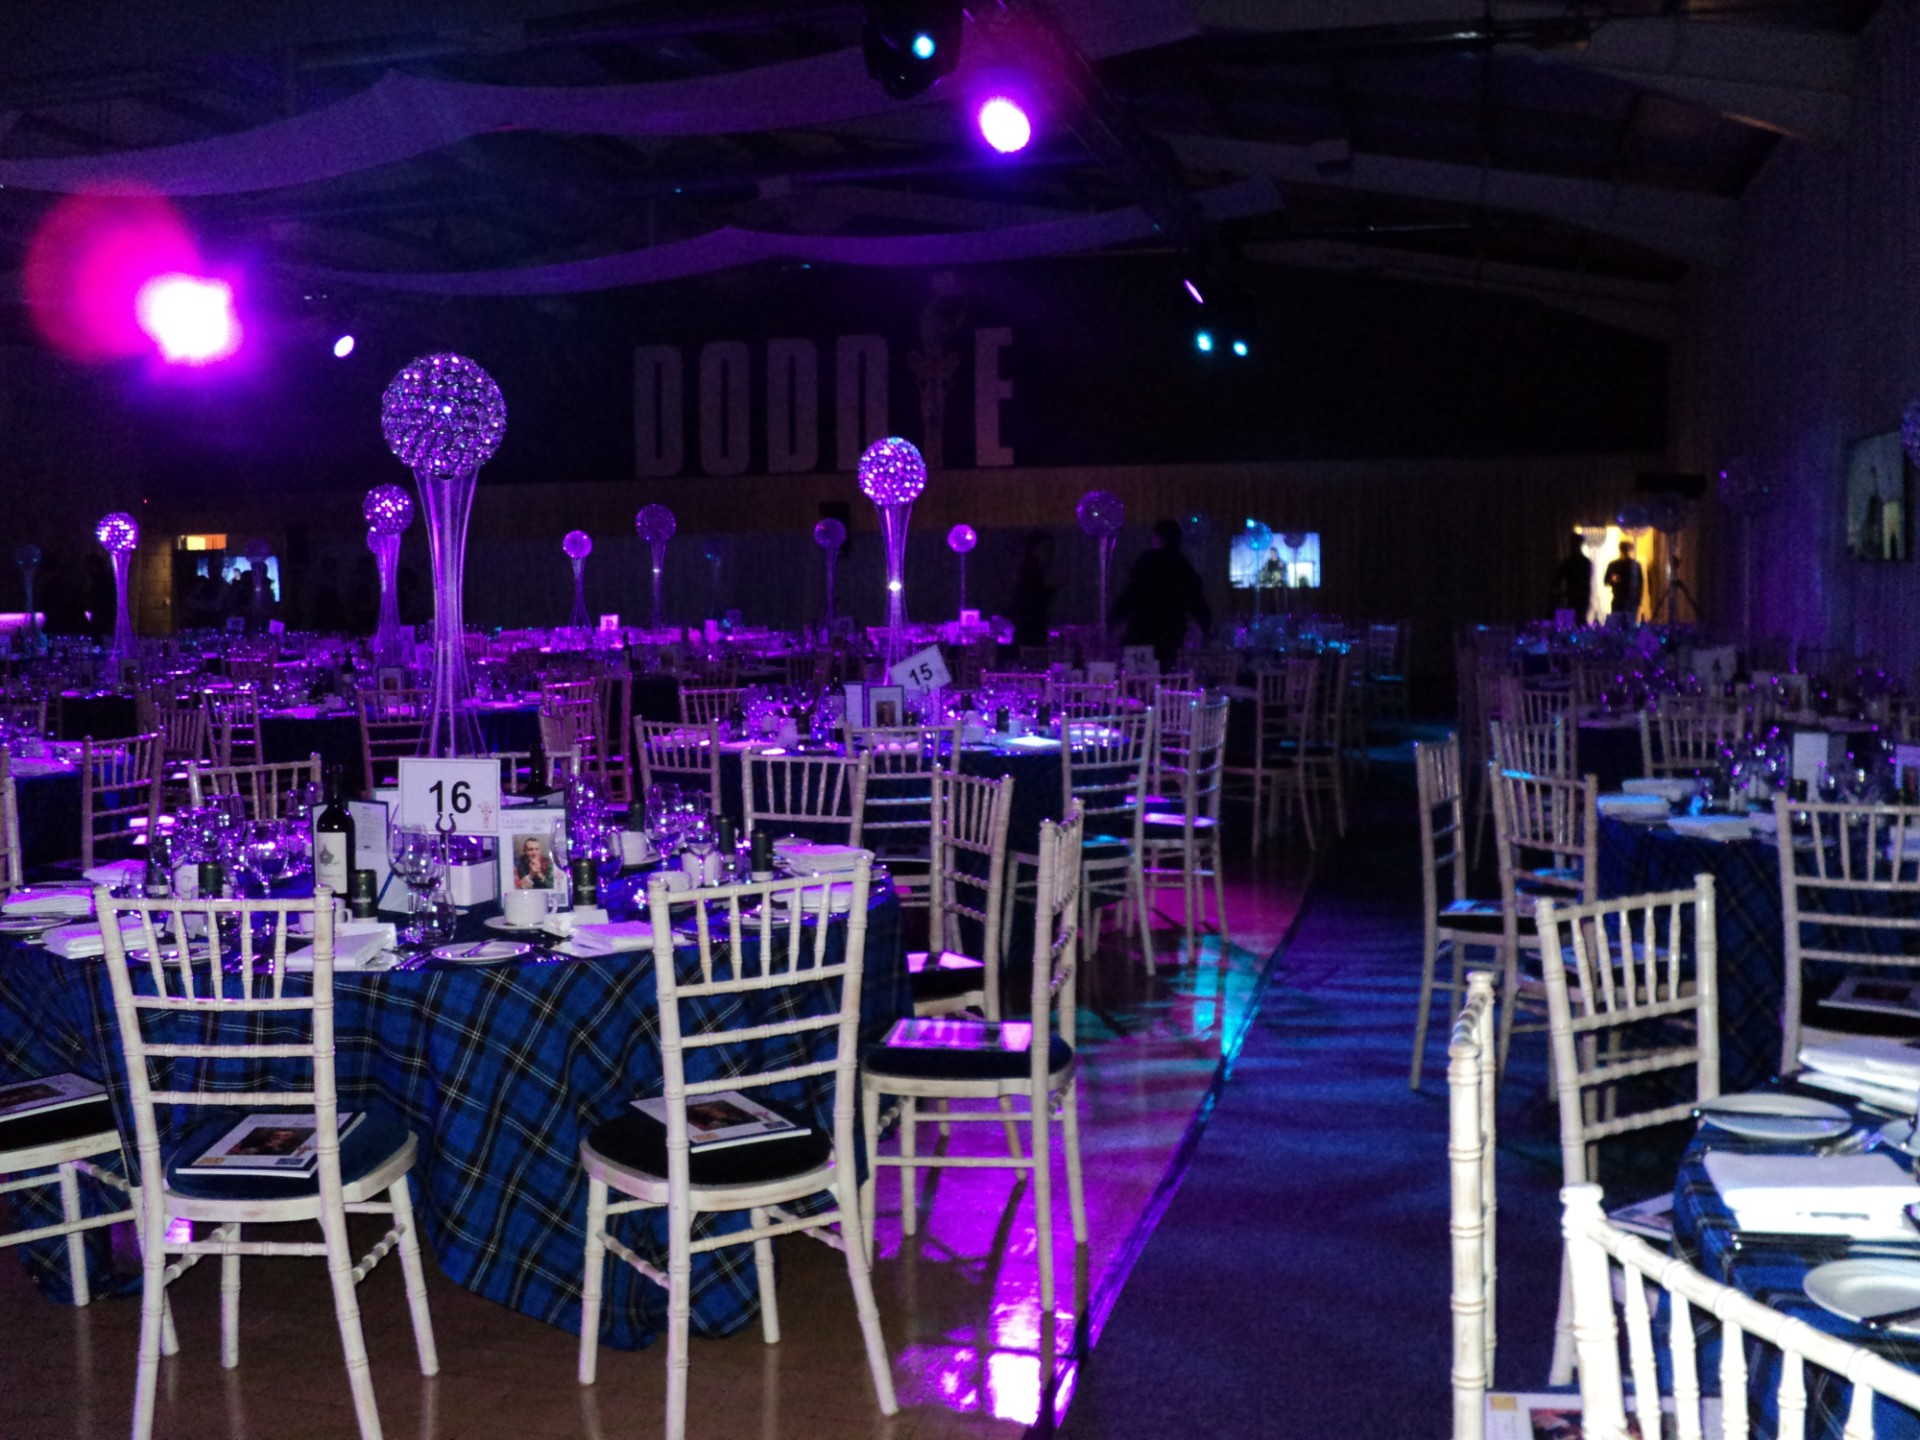 The BEC and its large function hall set up for a charity dinner and dance